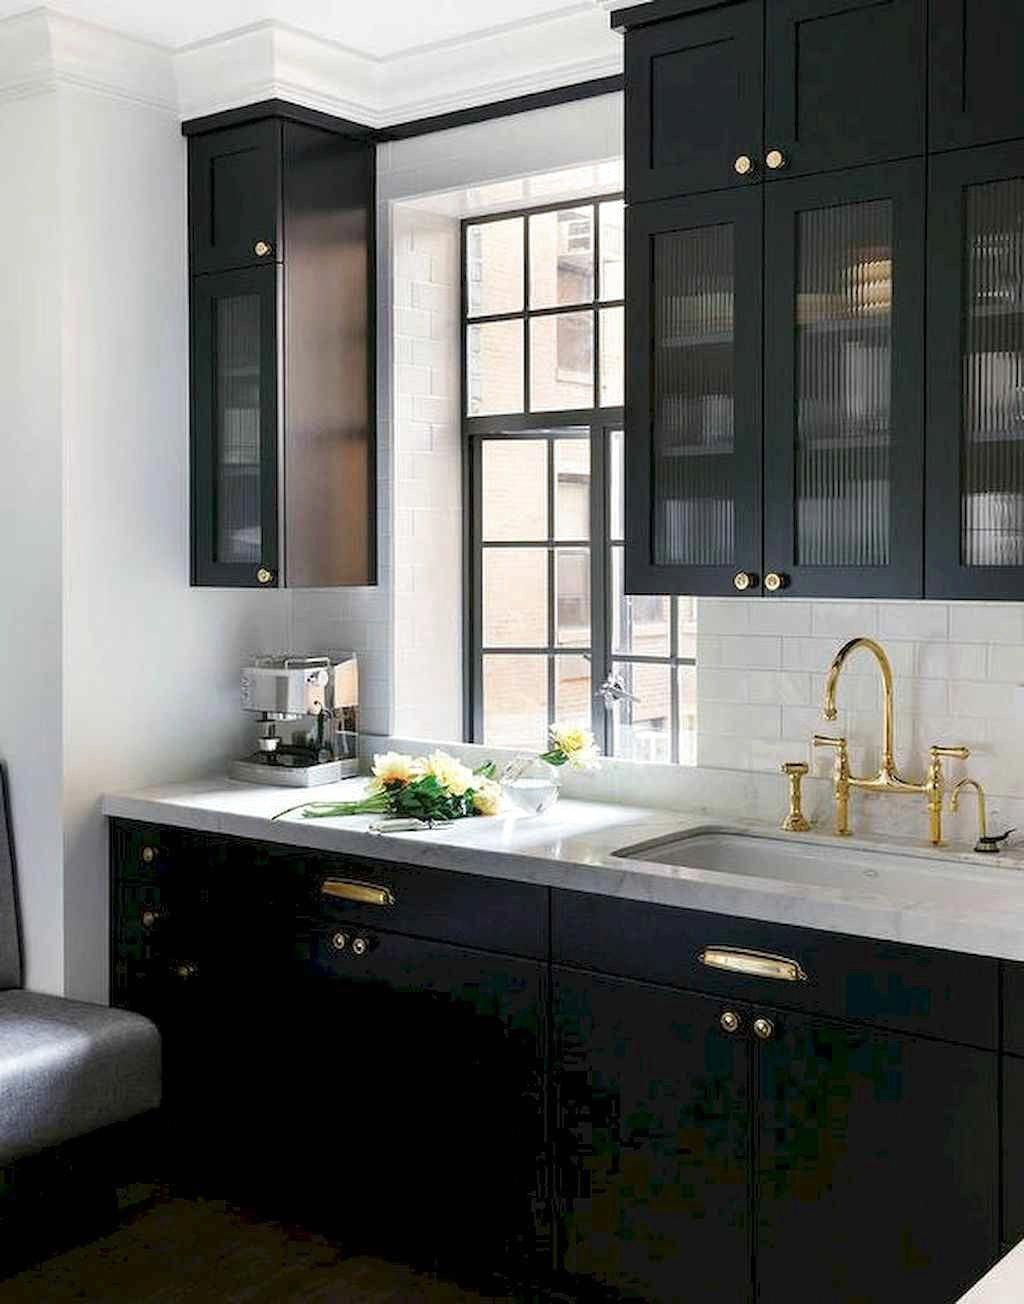 pin on kitchen cabinets trends on kitchen cabinets upper id=12138